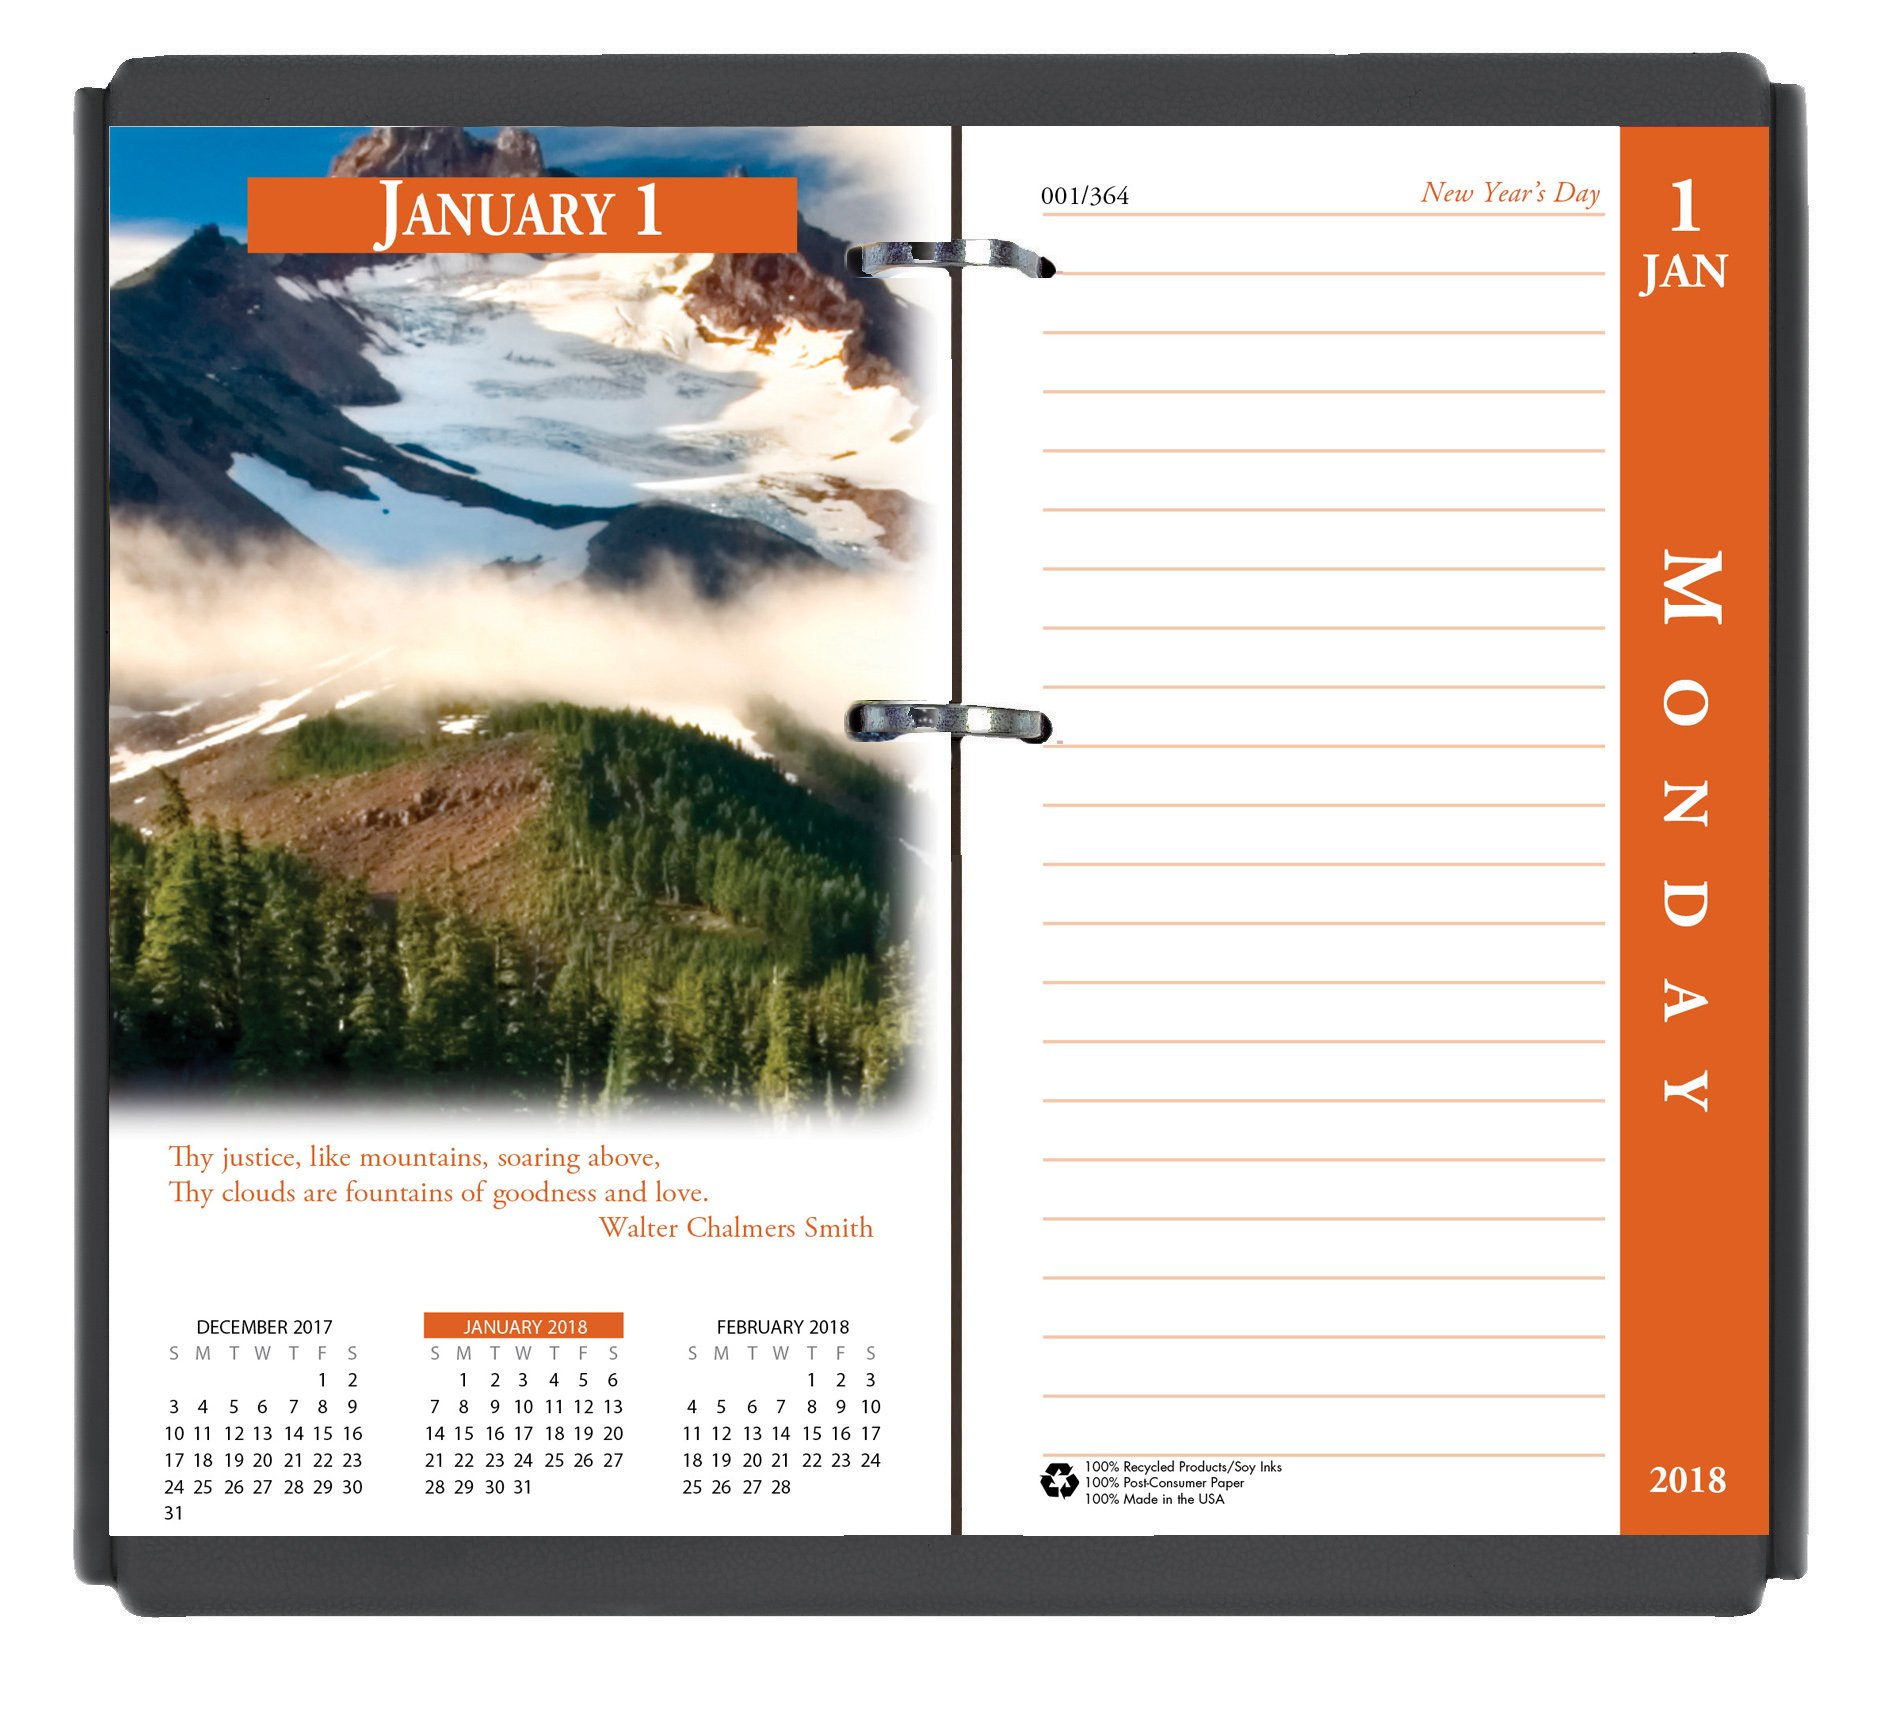 House of Doolittle 2018 Desk Calendar Refill, Daily, Earthscapes, Fits #17 Base, 3.5 x 6 Inches, January - December (HOD417-18) by House of Doolittle